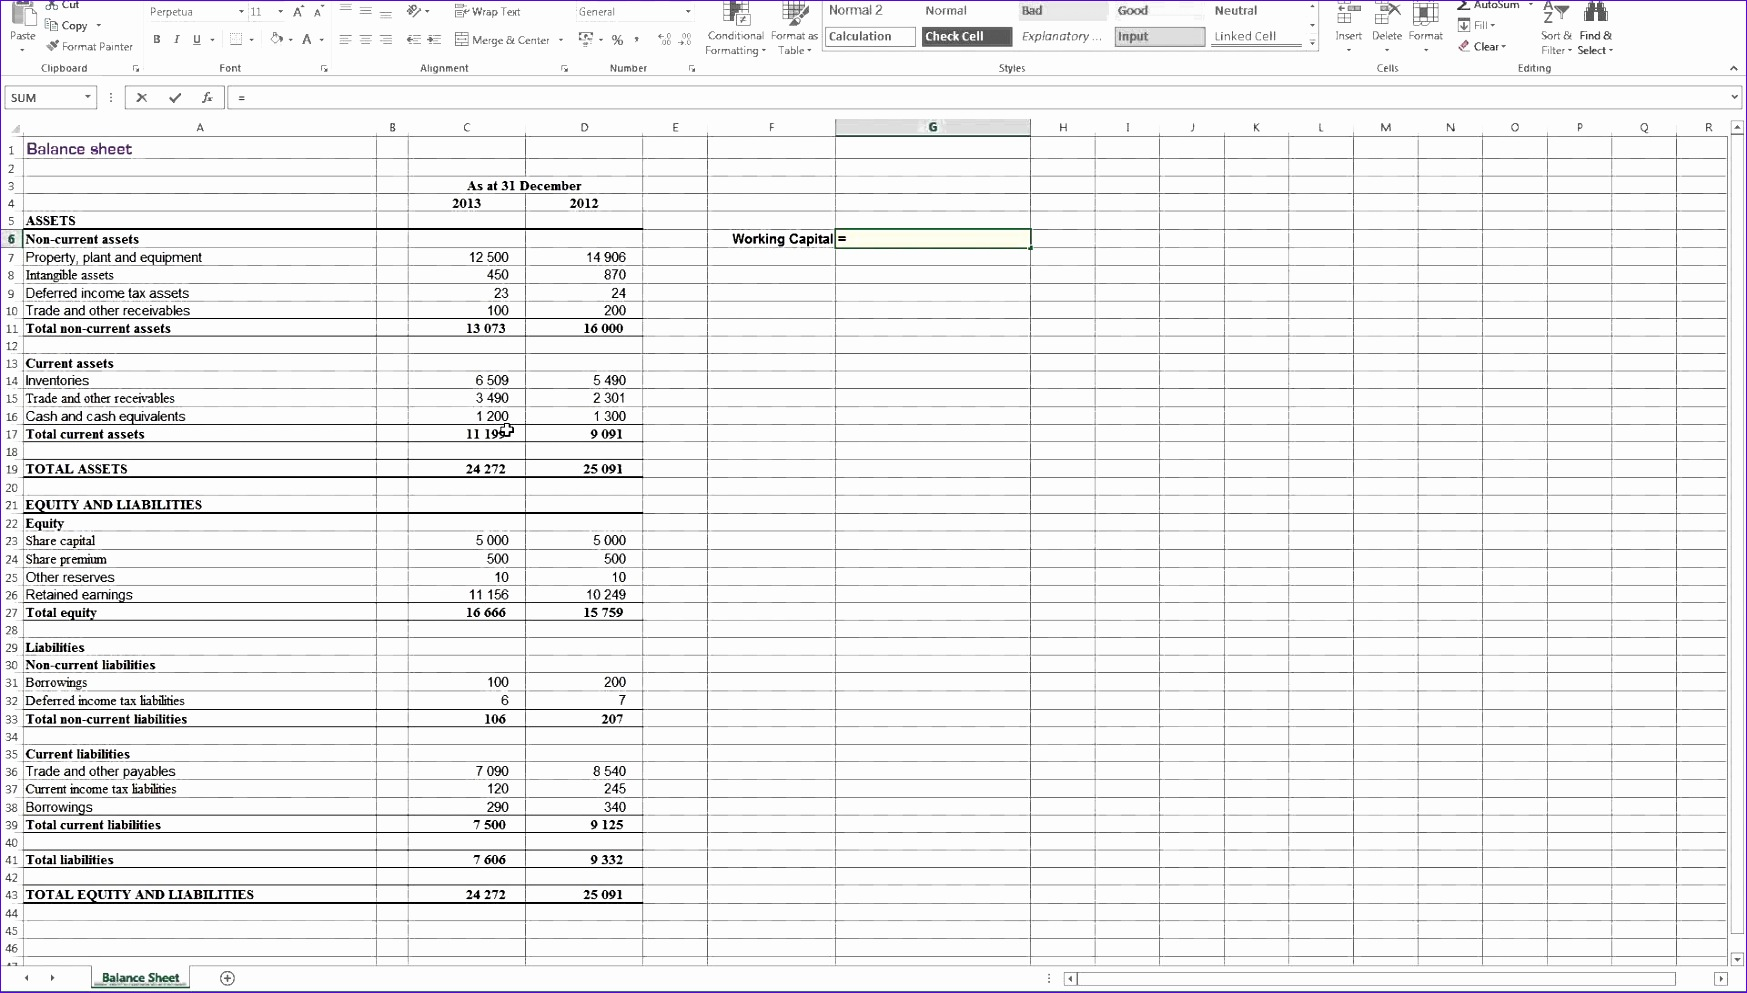 Excel Financial Statement Template Btrqo Fresh Calculating Working Capital In Excel